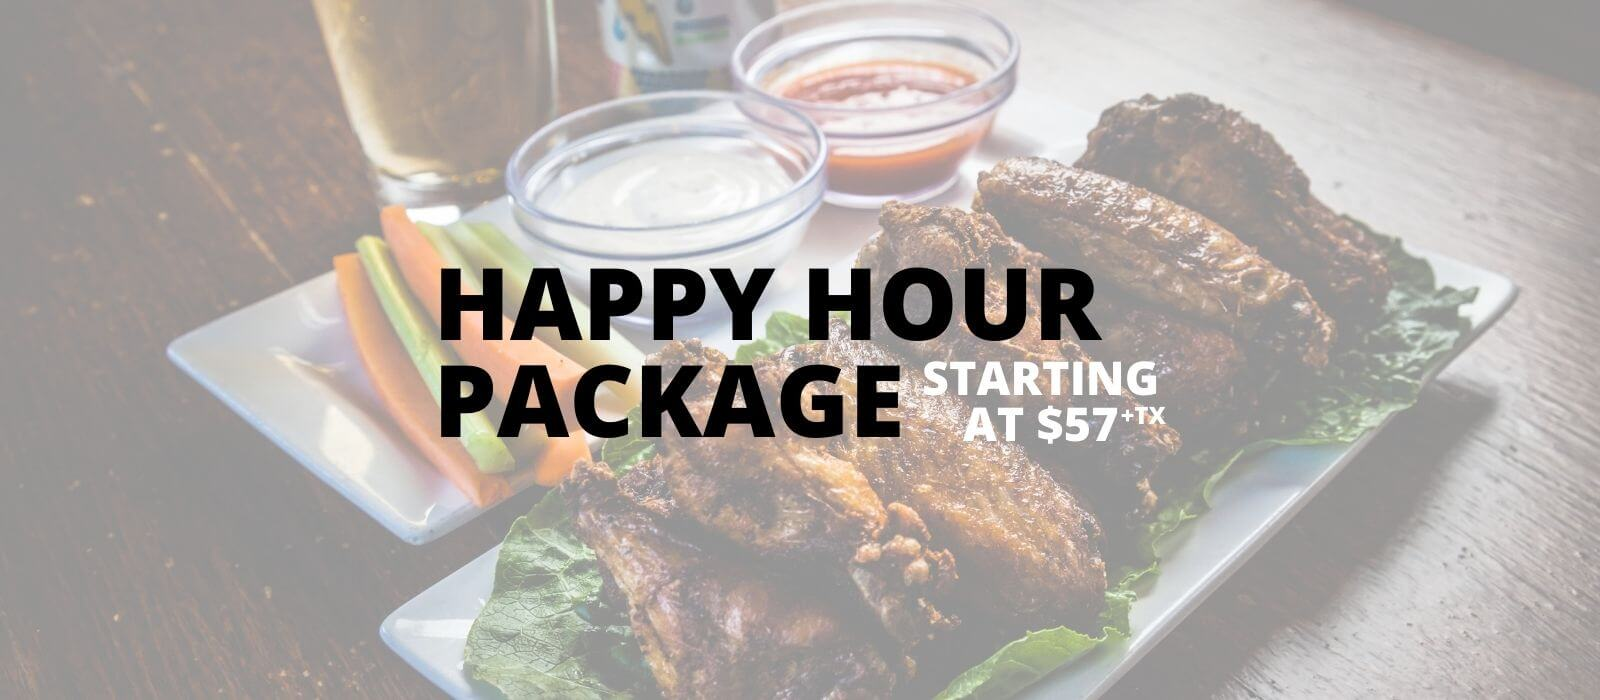 Happy Hour Package